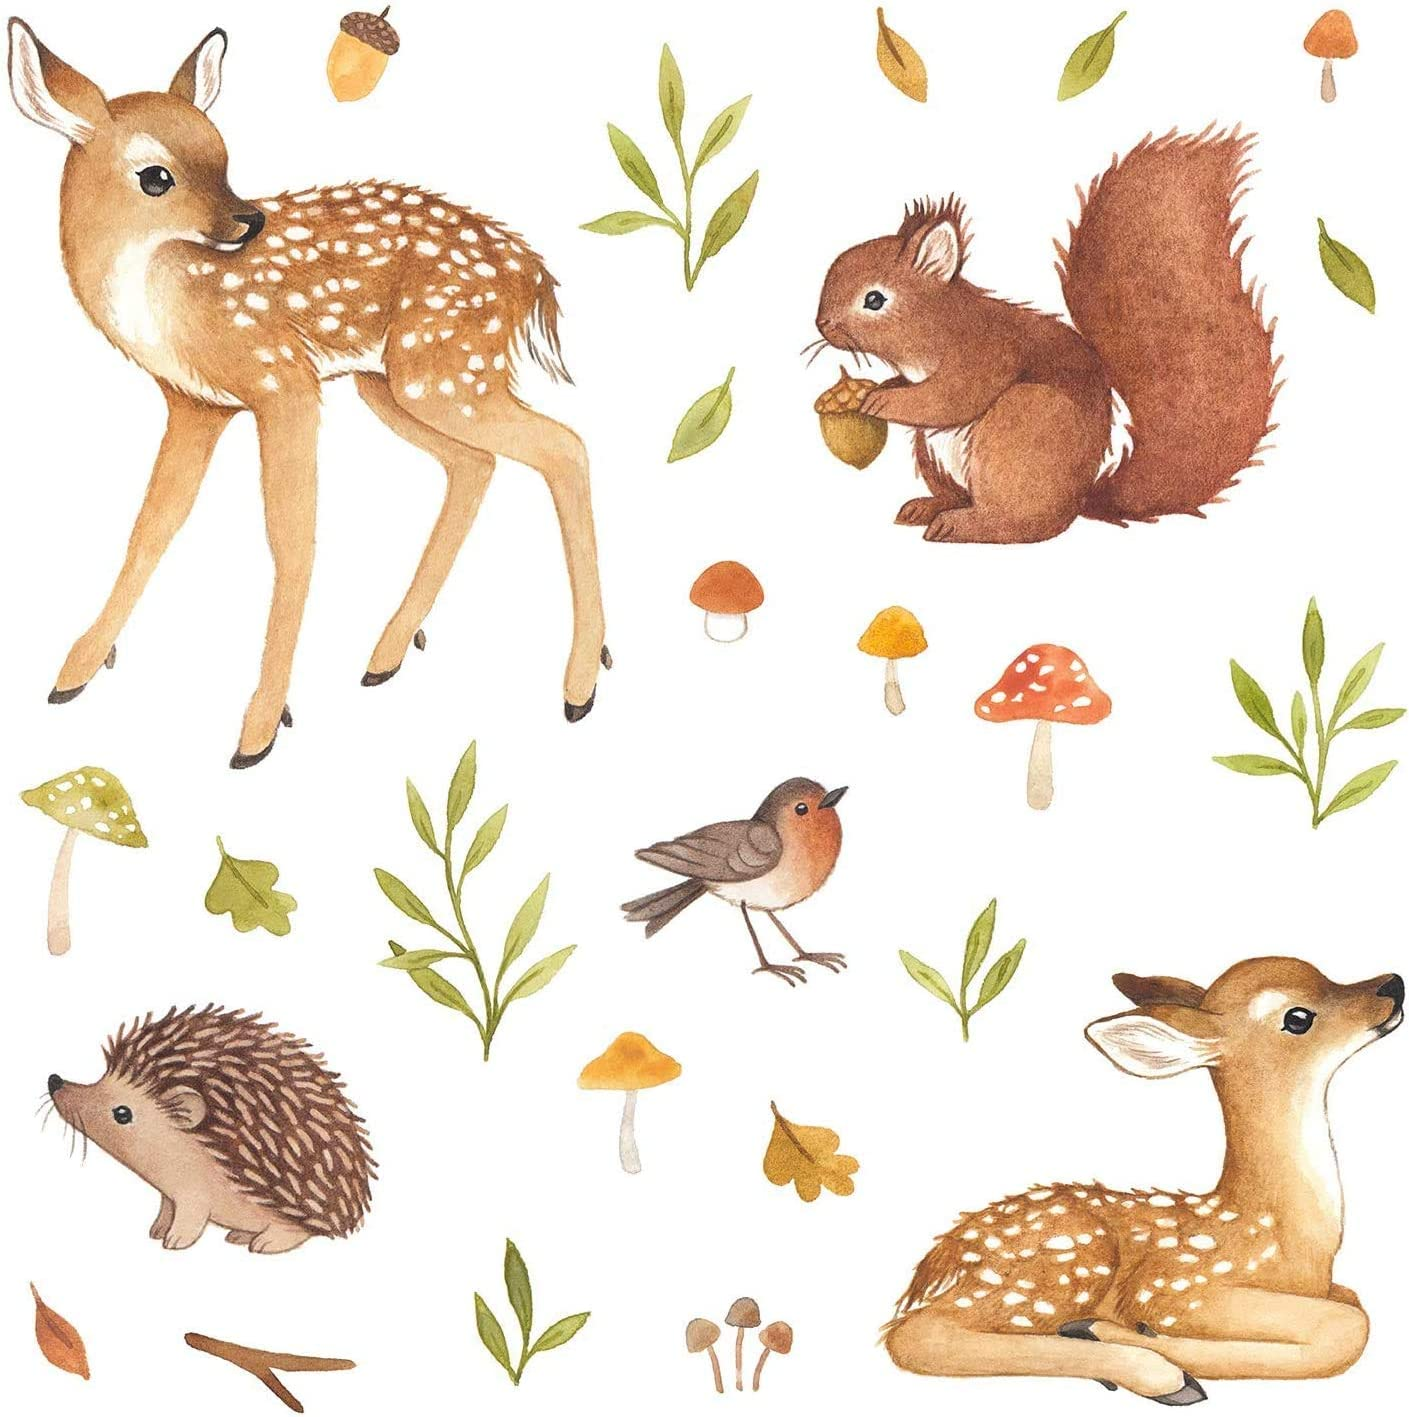 Woodland Nursery Decor, Woodland Animals Baby Nursery Wall Decor Decals Set for Kids Room Decor, Perfect Baby Girl Gifts & Baby Boy Gifts, Gender Neutral Wall Stickers, New Mom Baby Shower Gifts